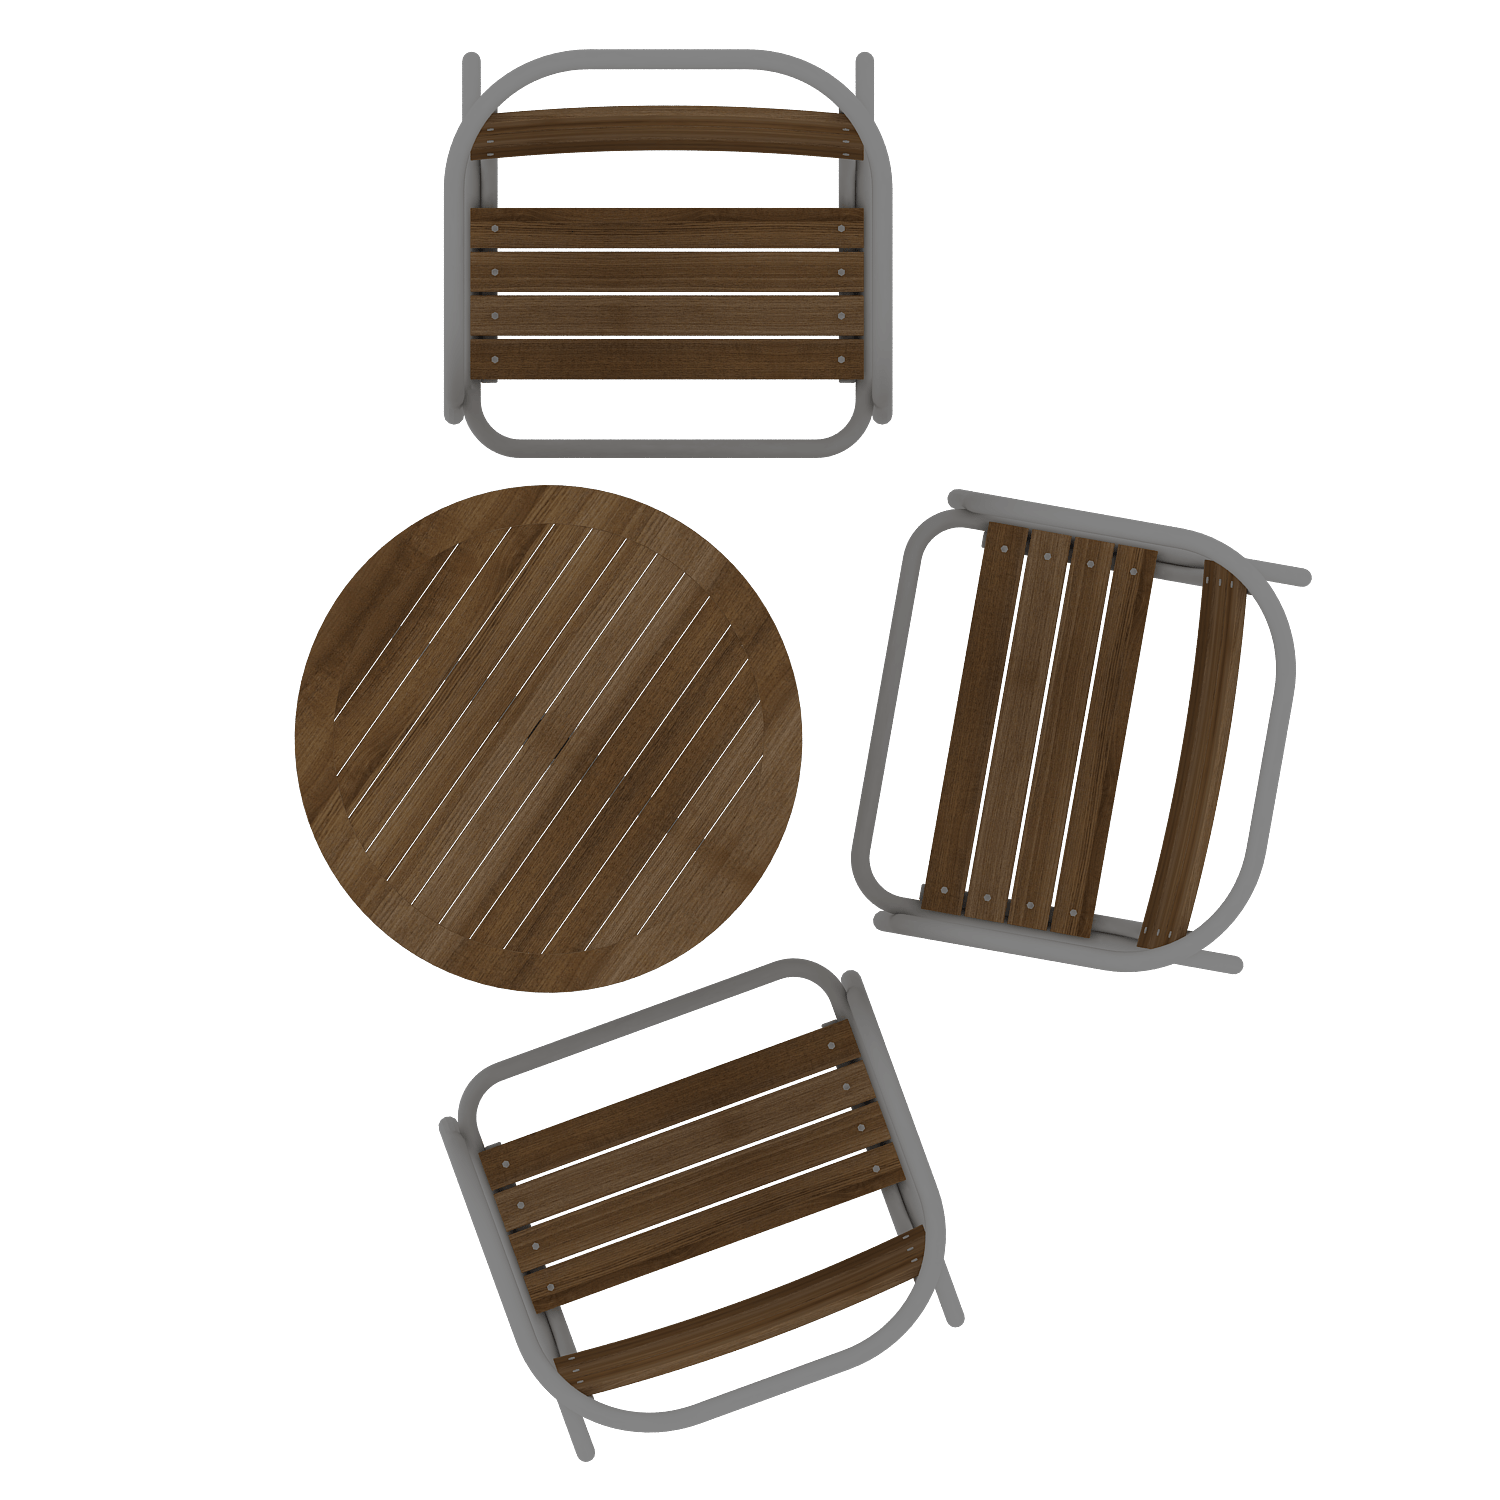 31   Beauty Chair Top View for Table And Chairs Top View Png  181obs